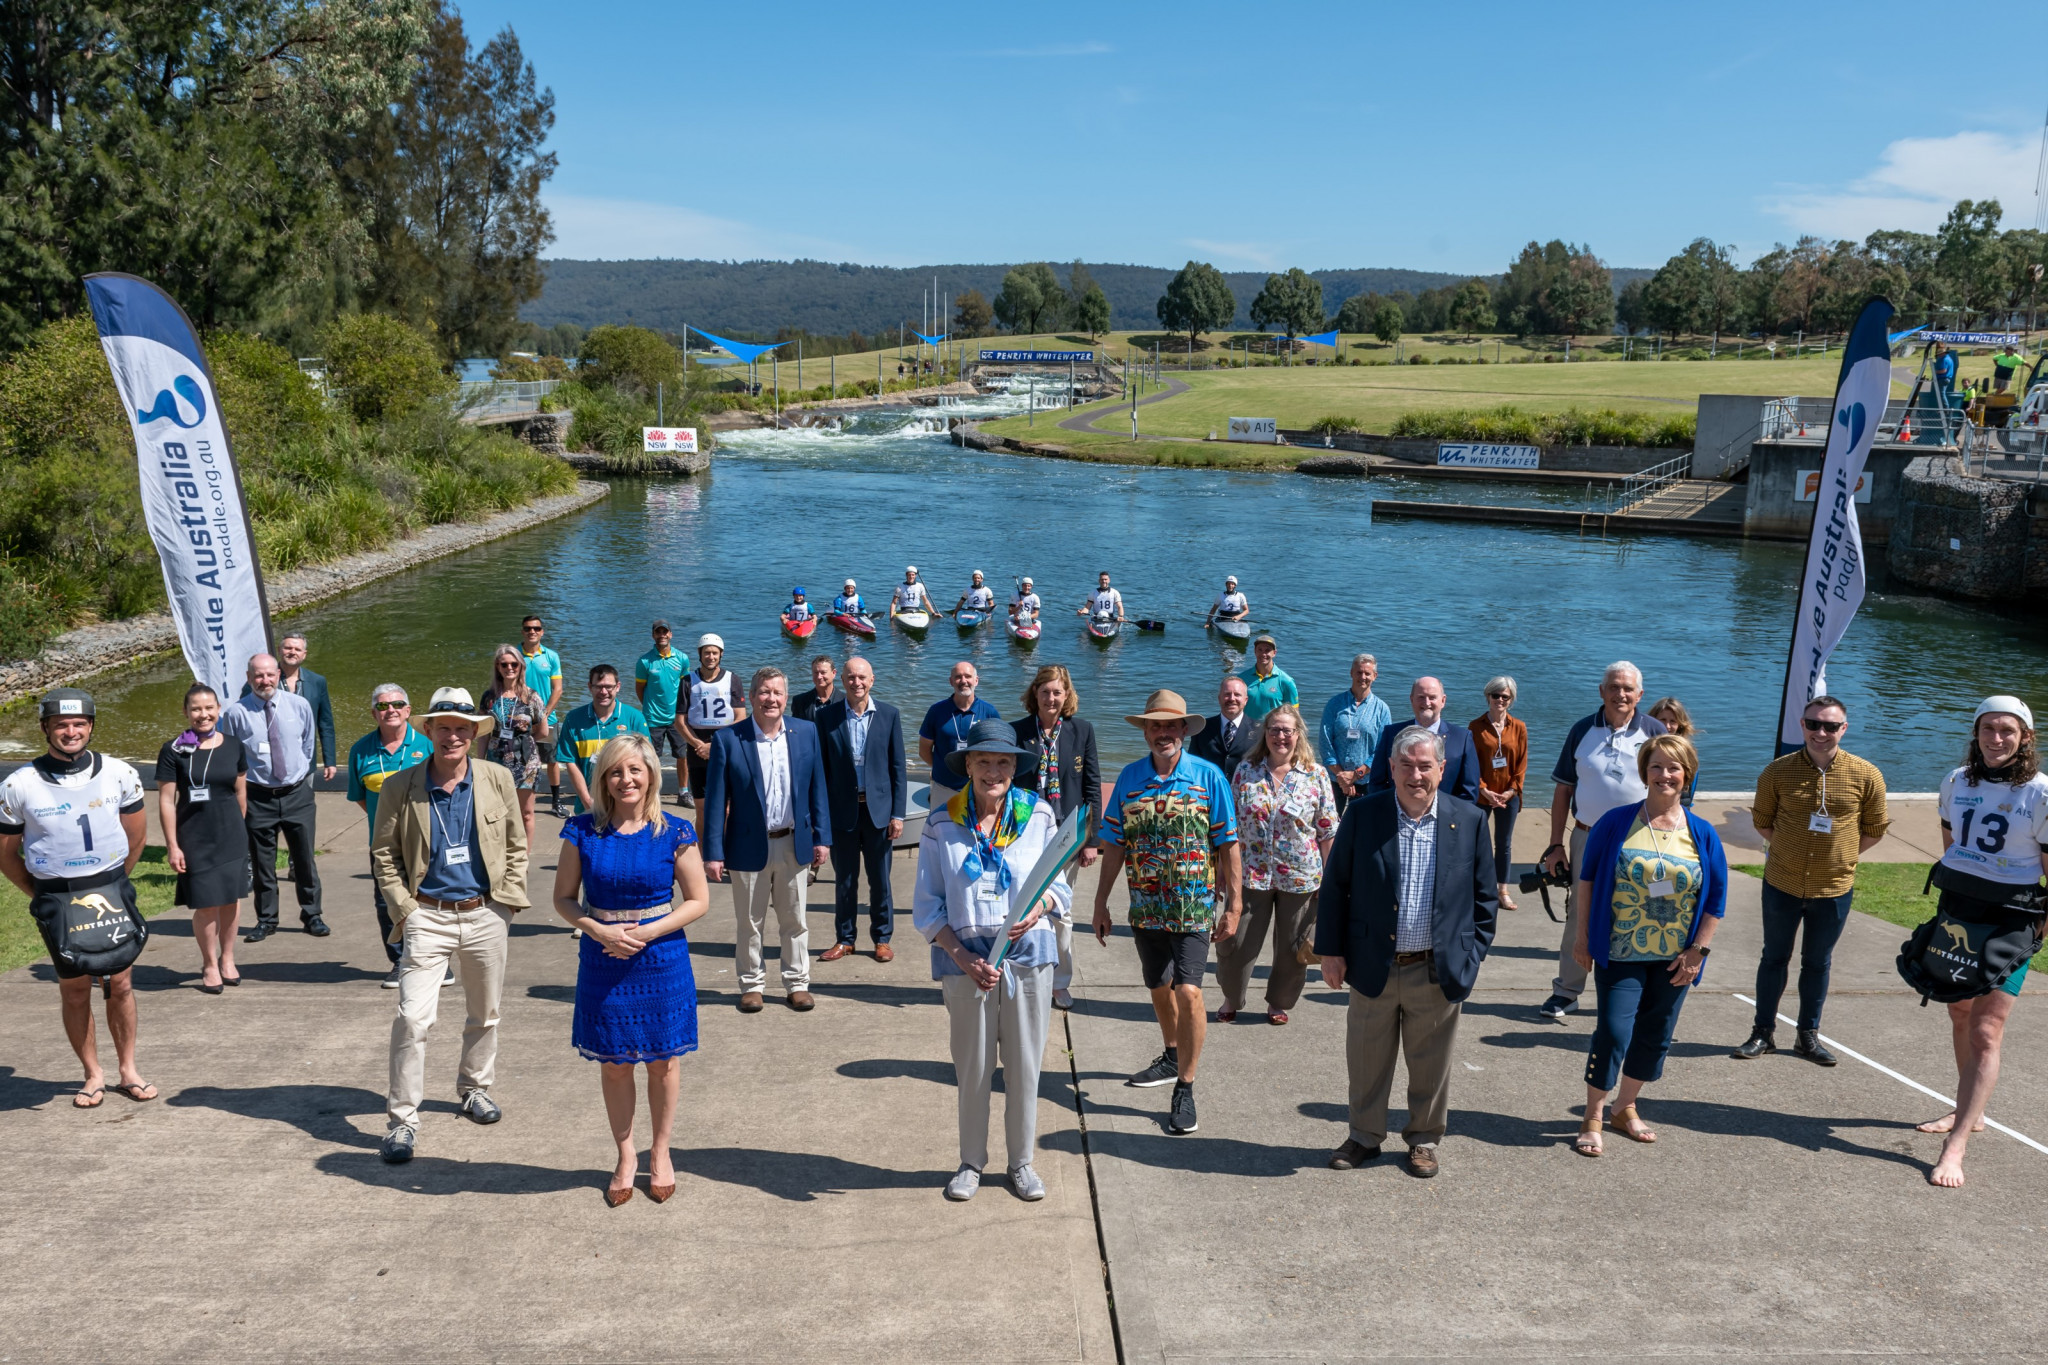 Canoeists attended an event to mark the Sydney 2000 anniversary at Penrith Whitewater Stadium ©Paddle Australia